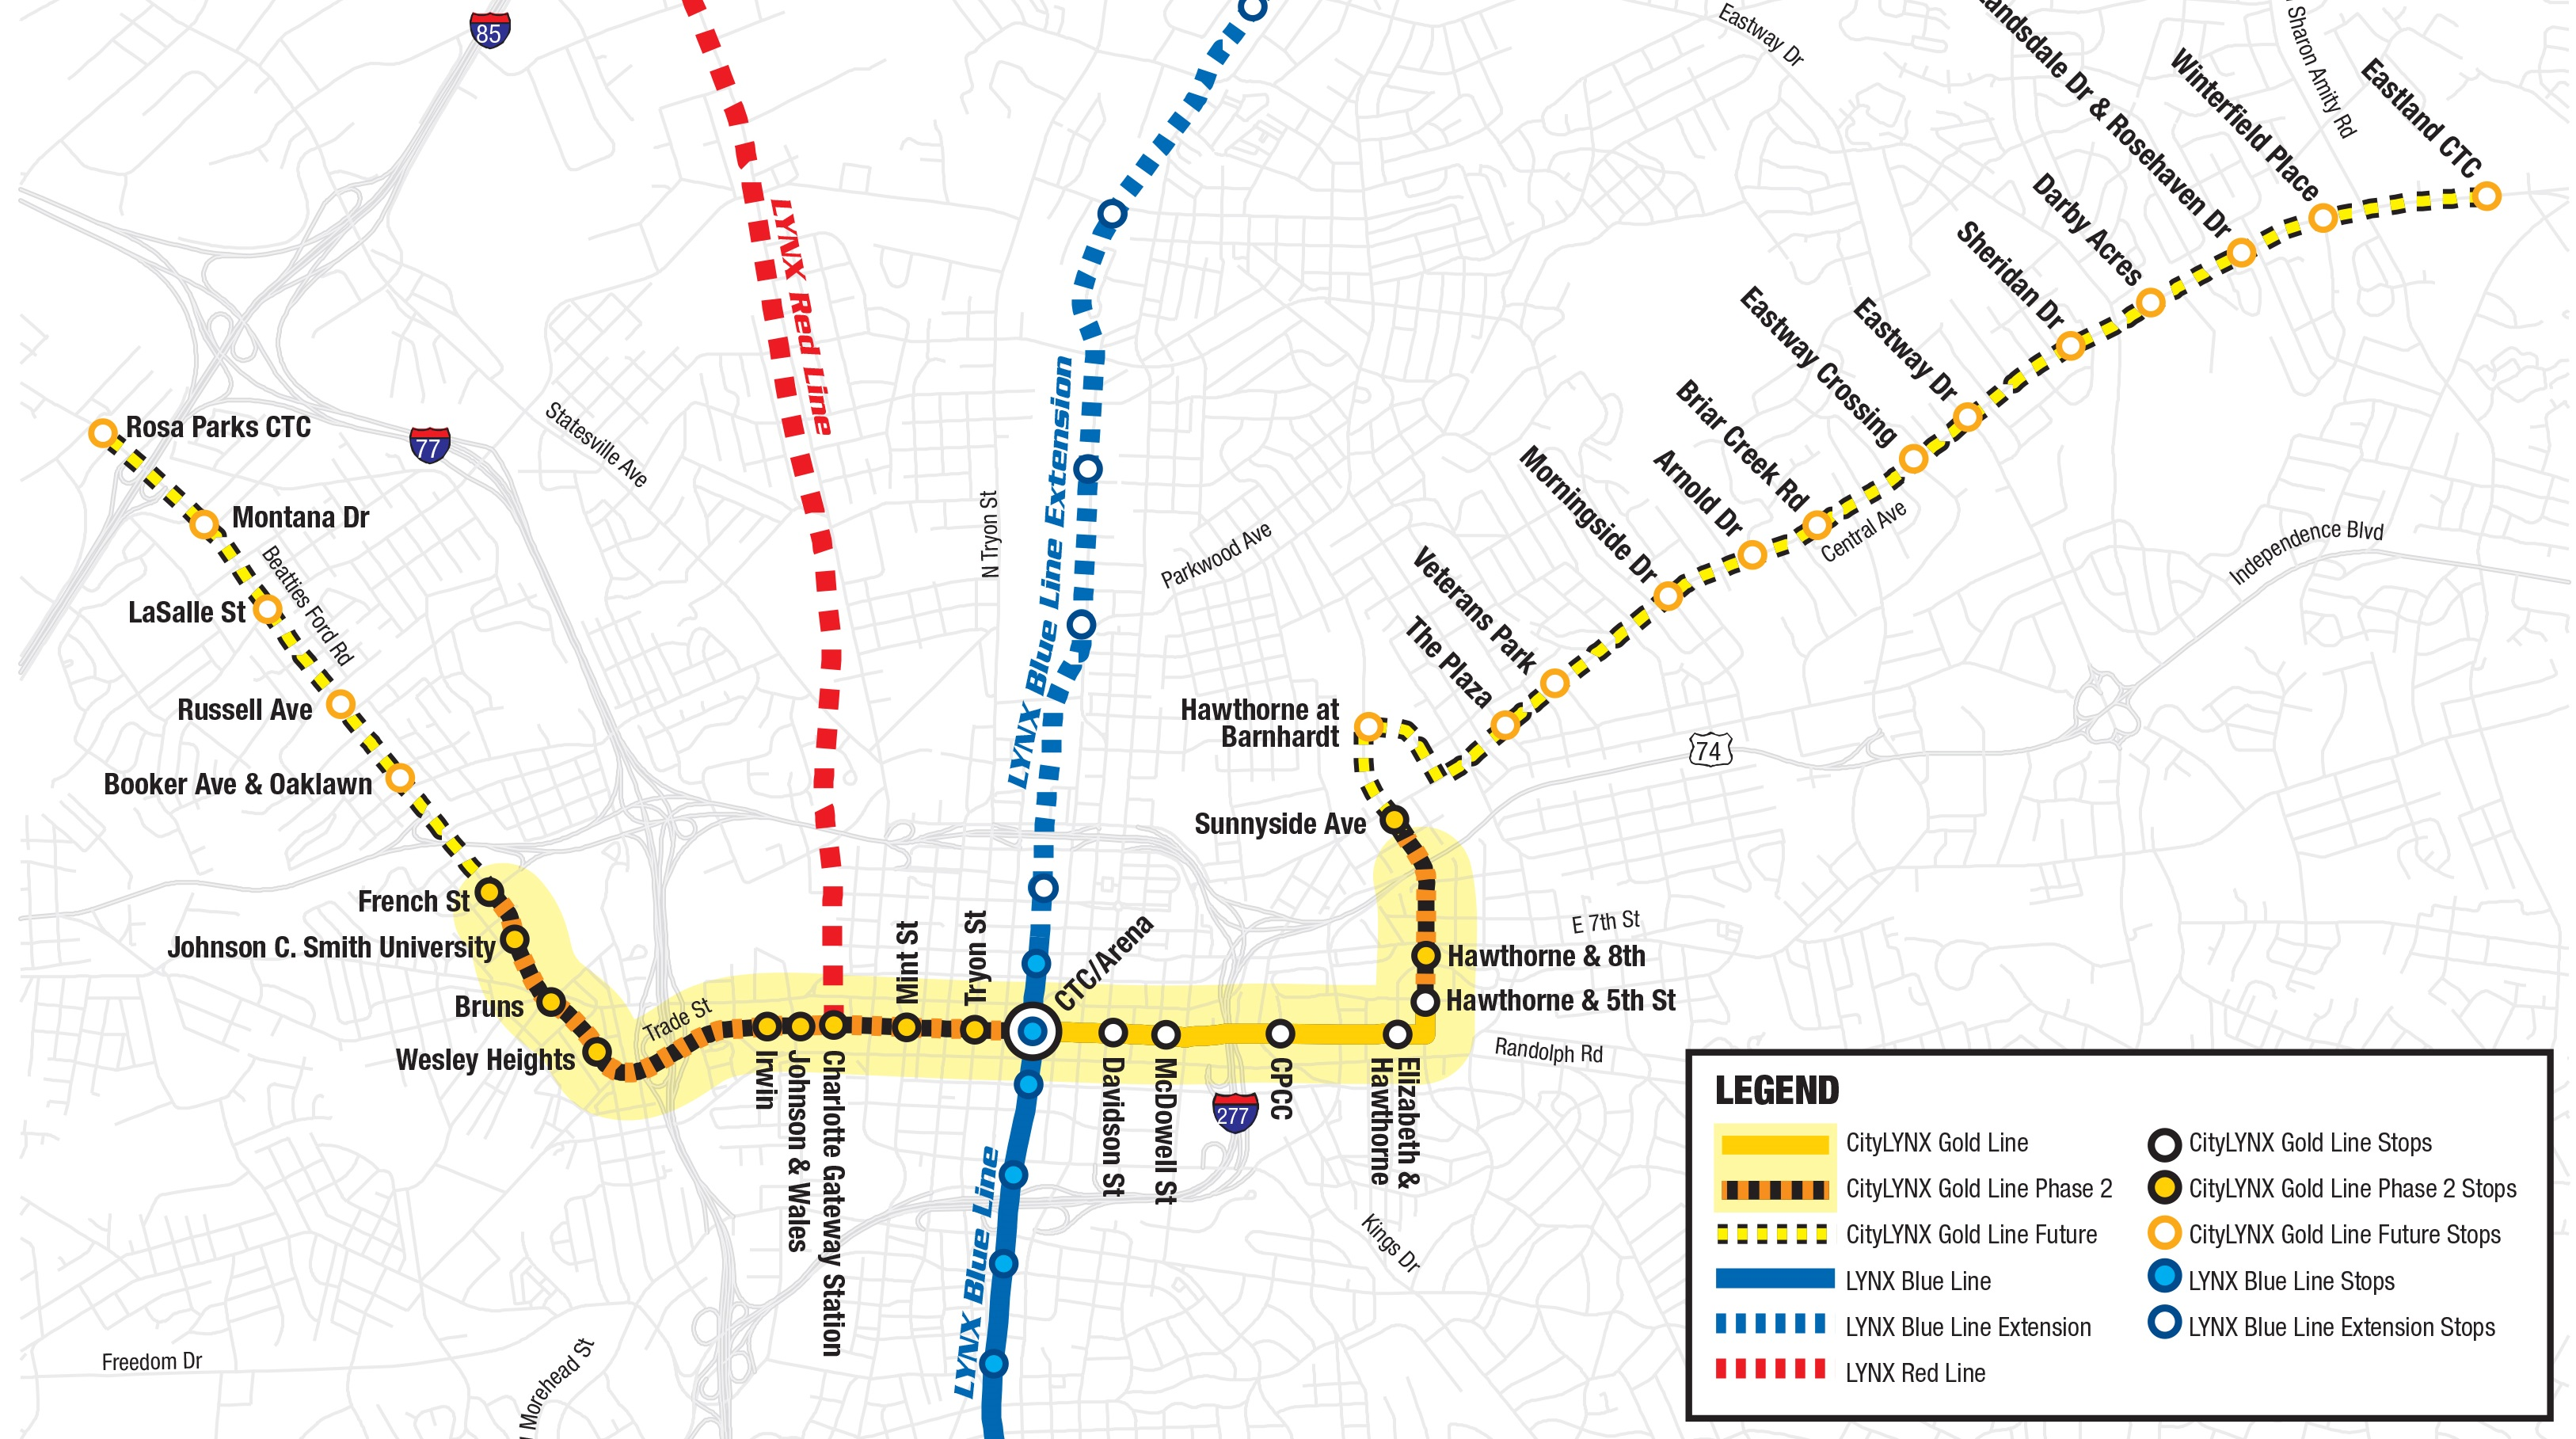 The CityLYNX Gold Line map depicting all three phases of the project.